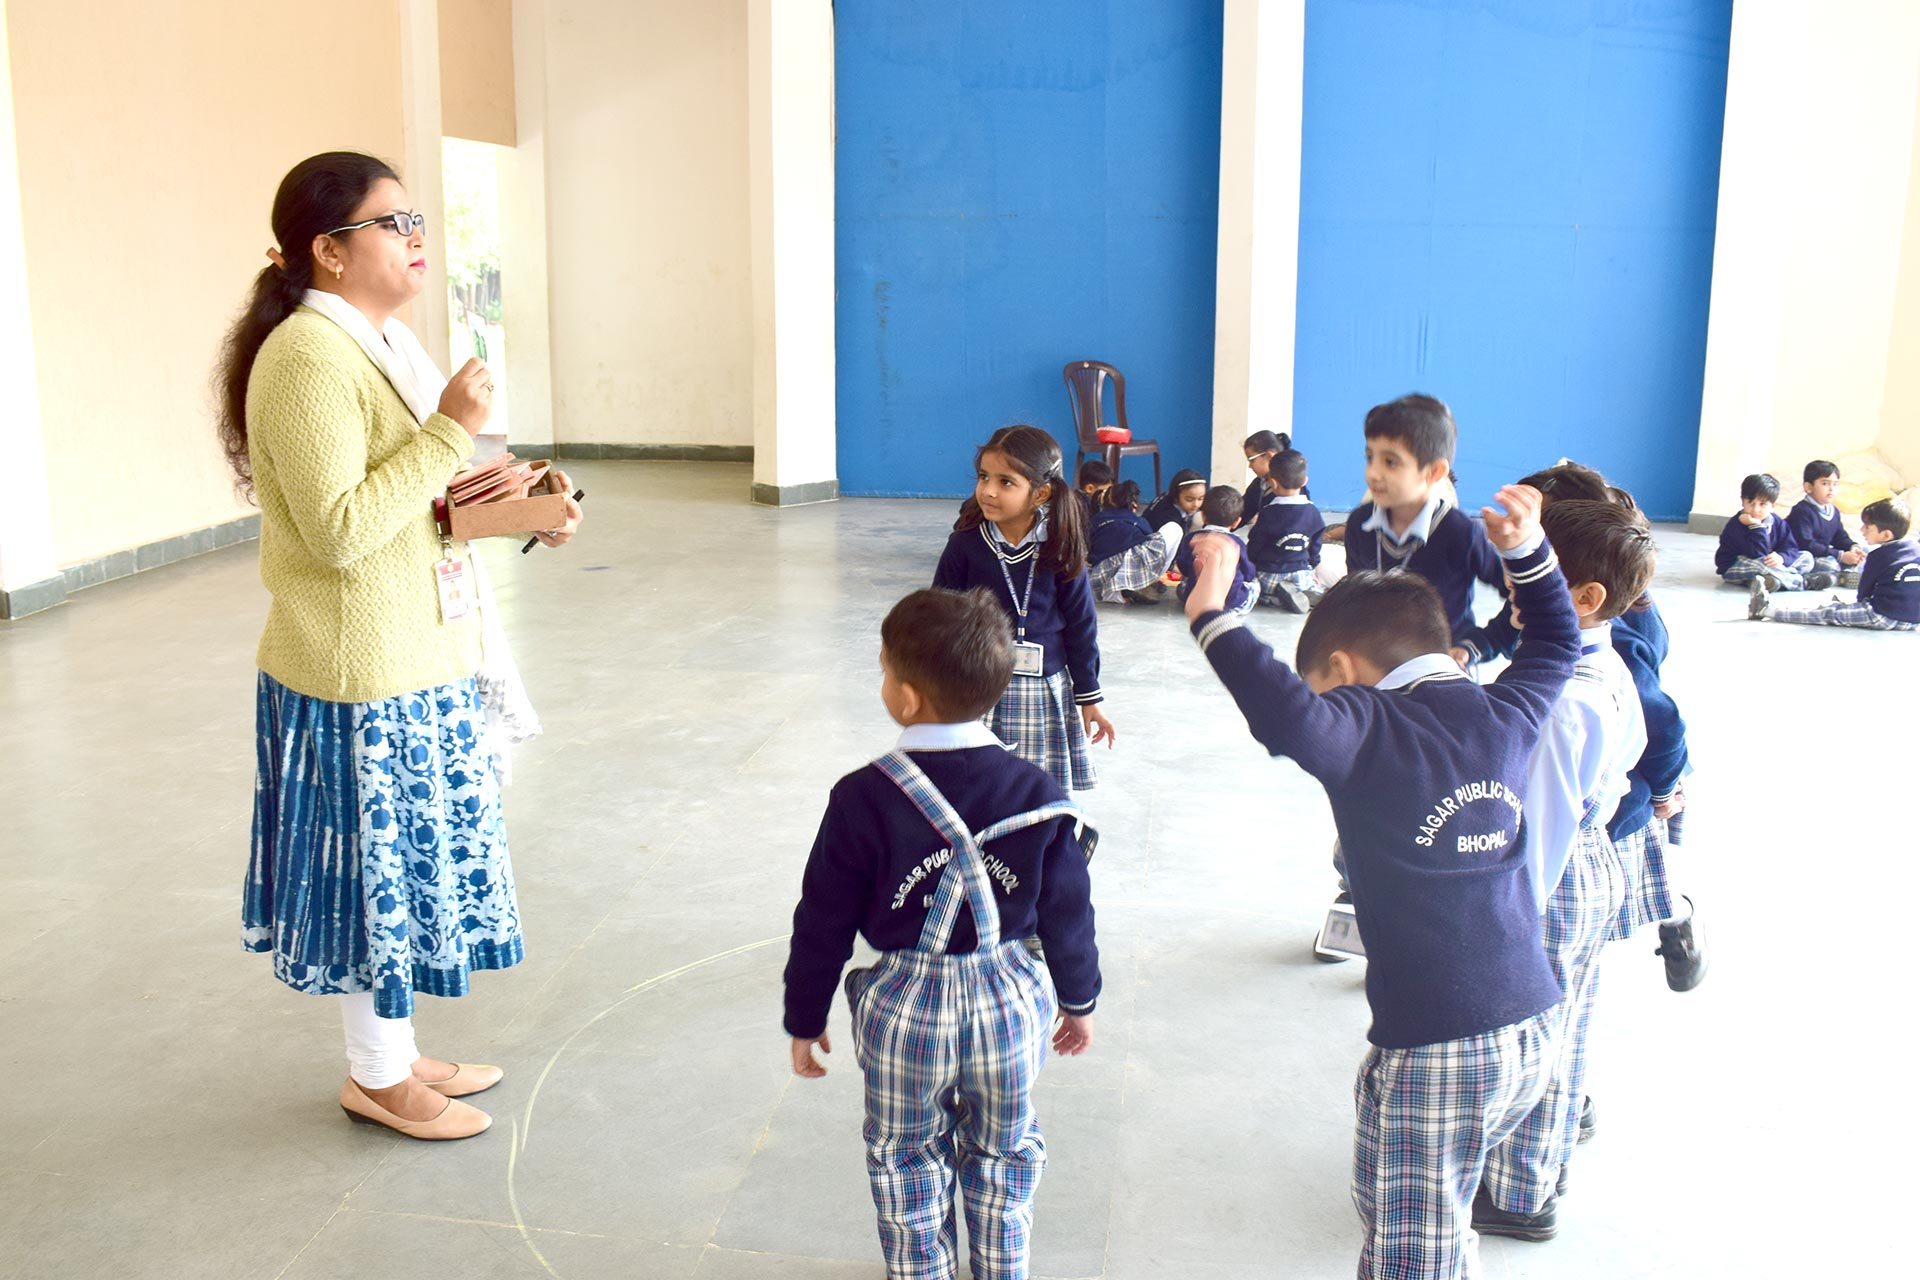 cbse schools in bhopal, list of cbse schools in bhopal, sps